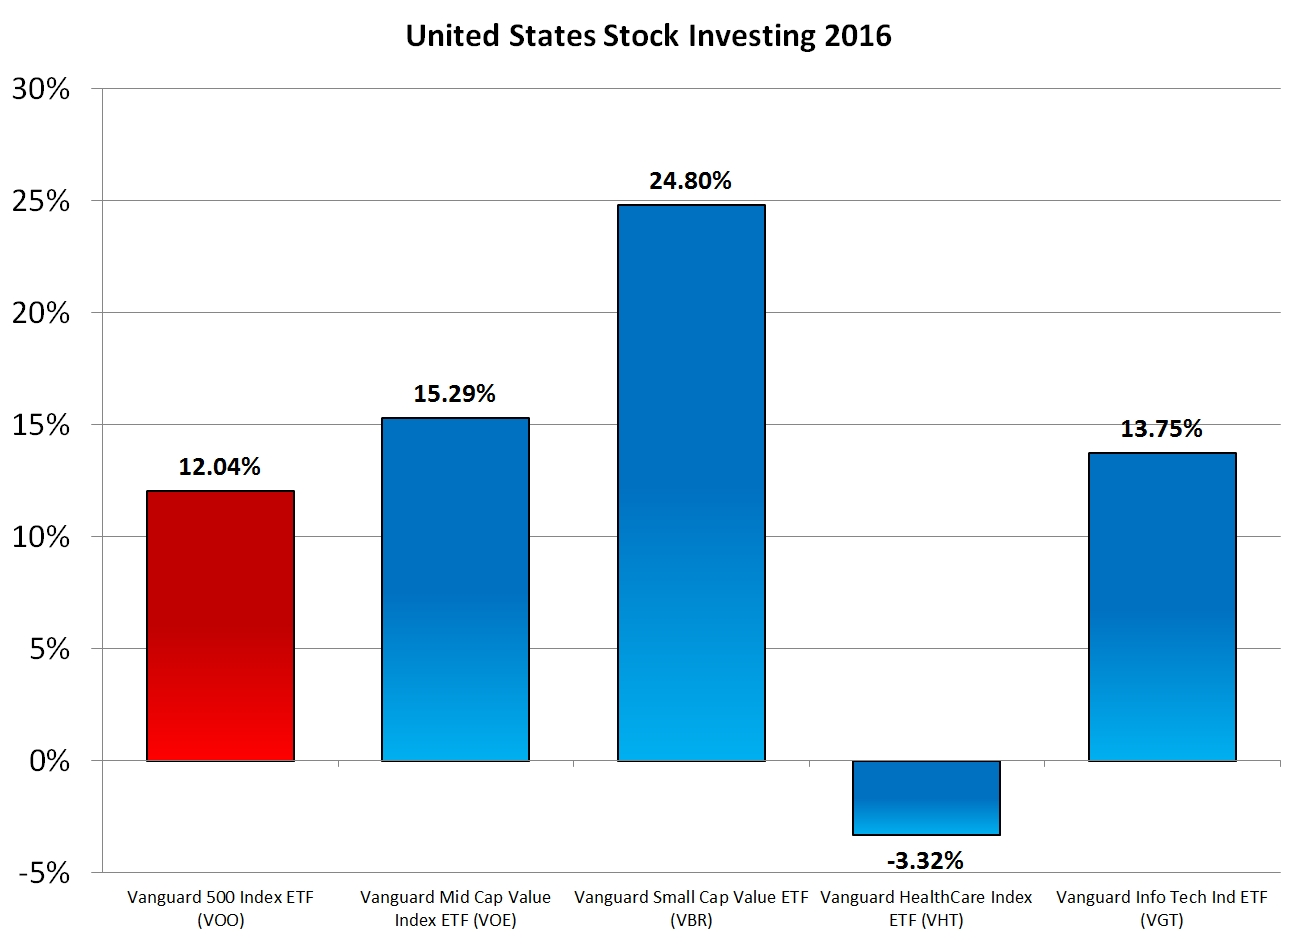 US Stock Investing in 2016